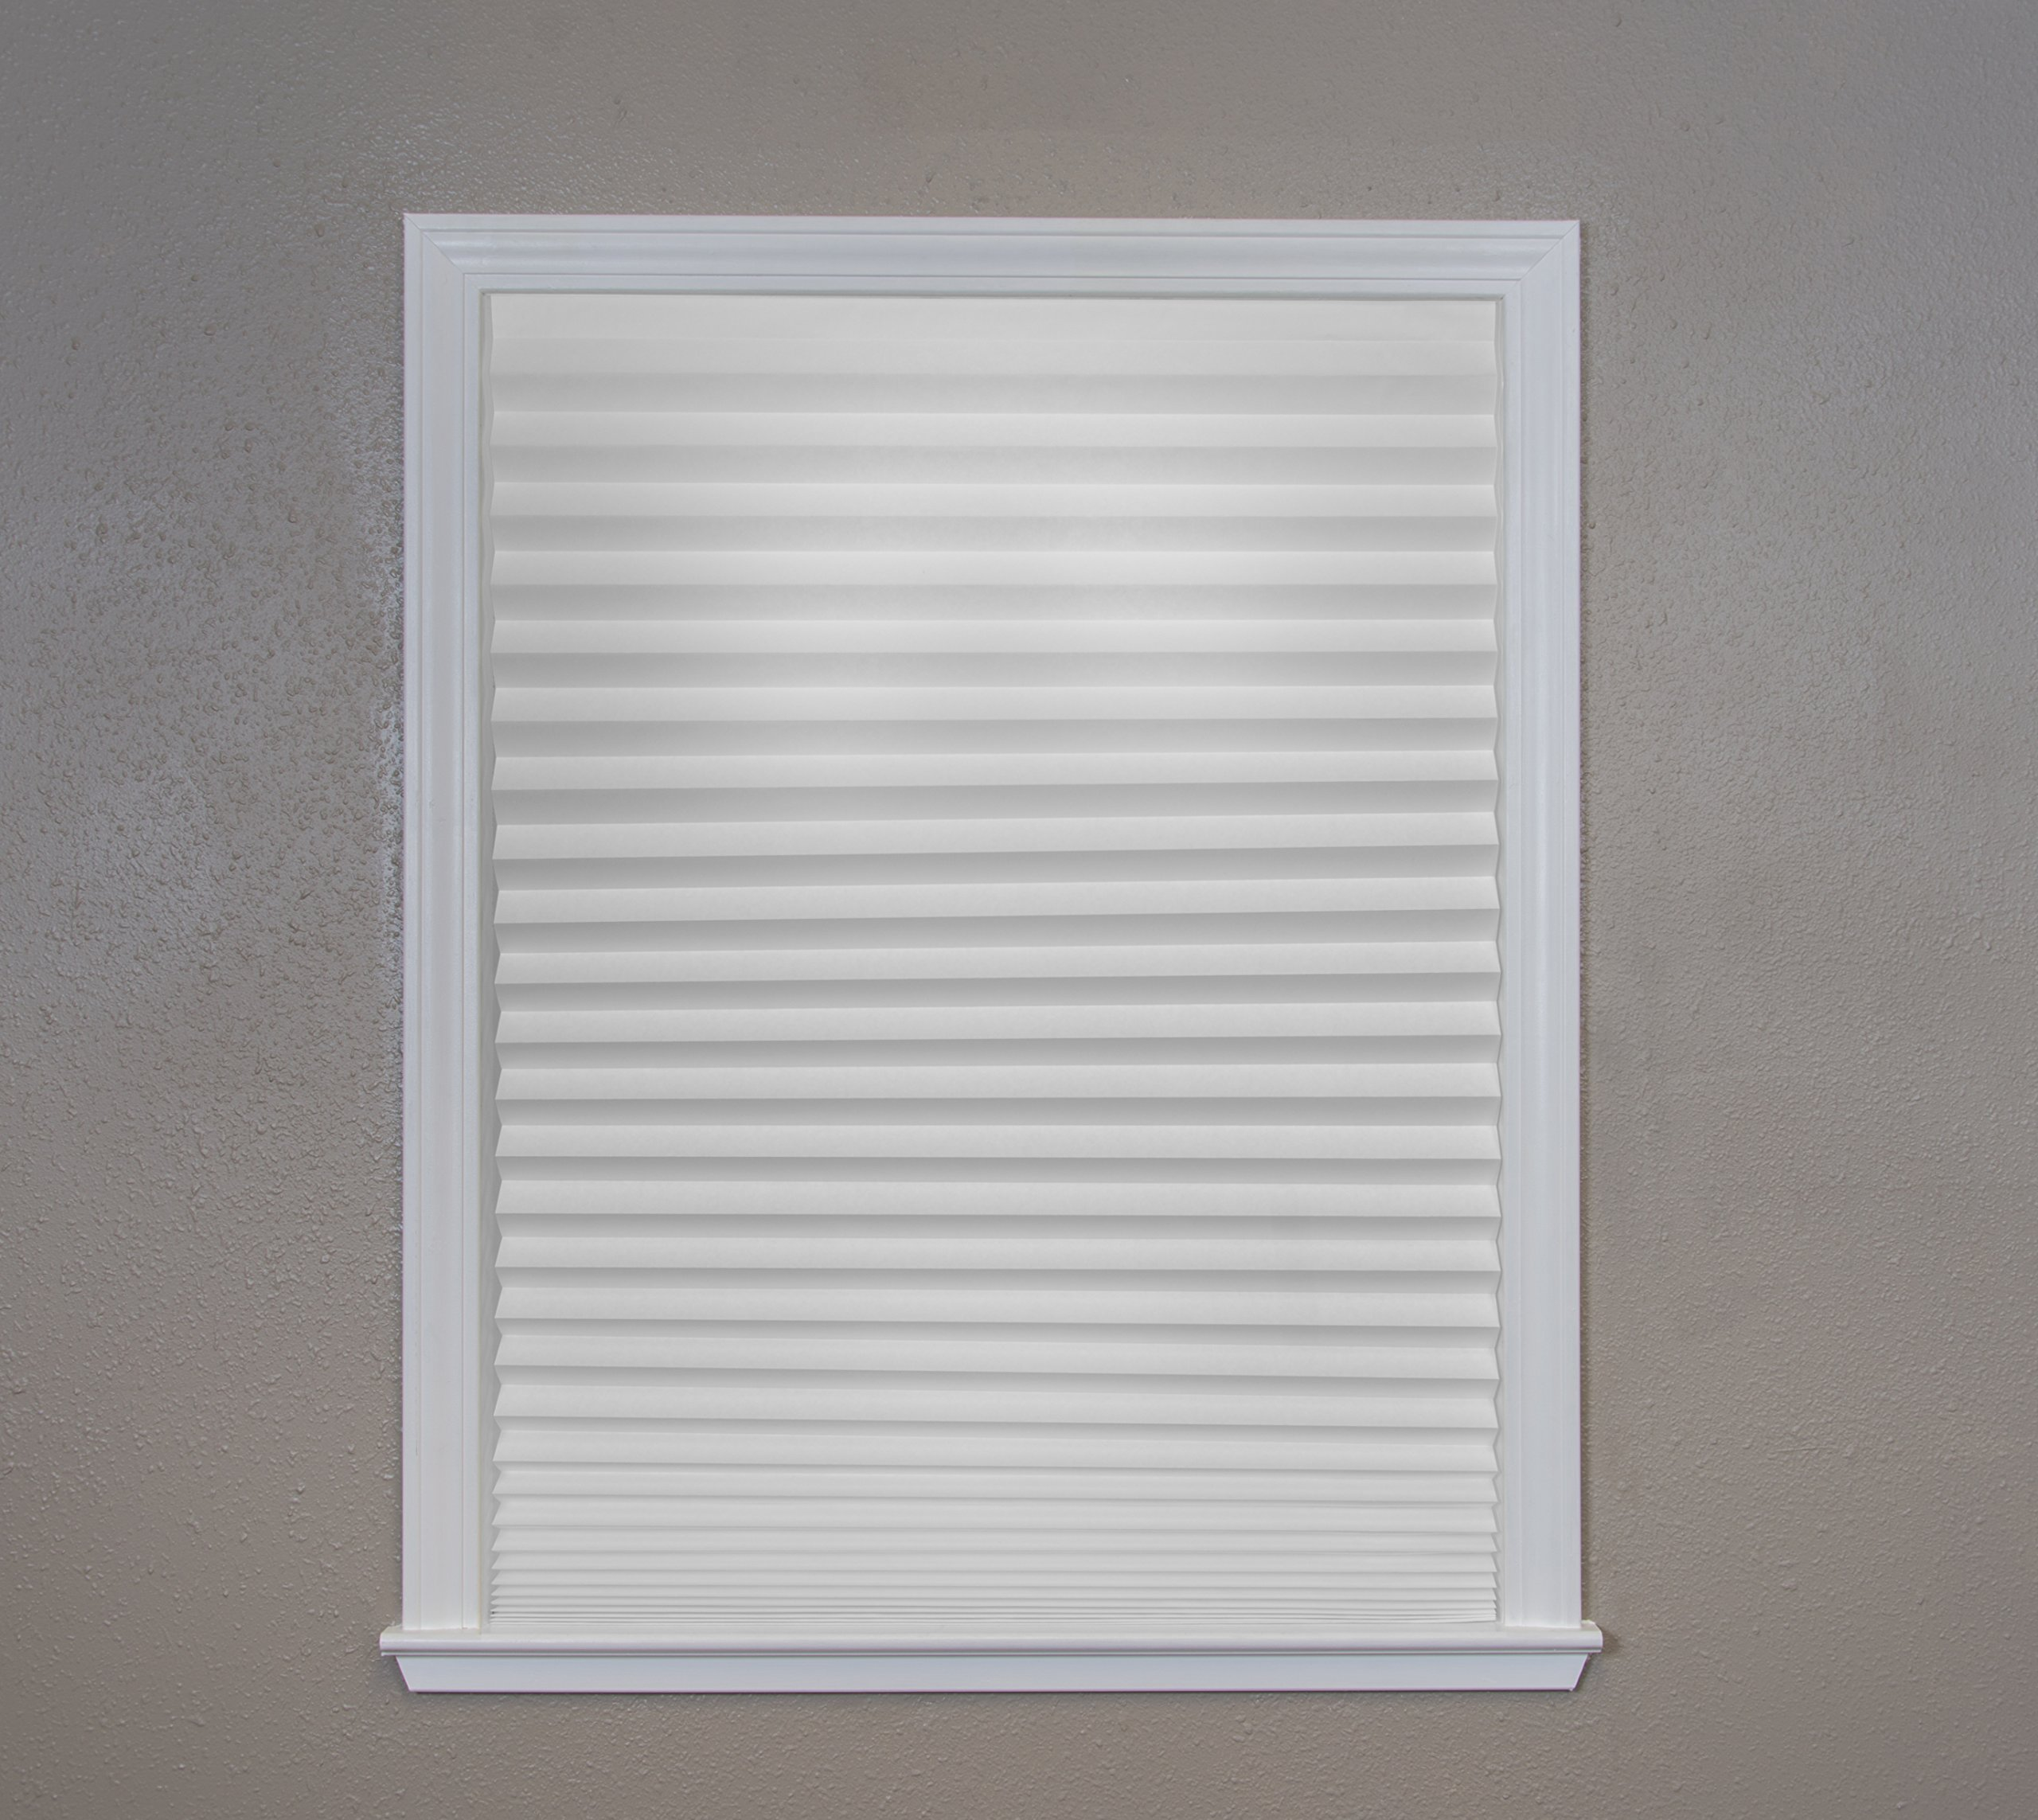 """Original Light Filtering Pleated Paper Shade White, 36"""" x 72"""", 6-Pack by Redi Shade (Image #9)"""